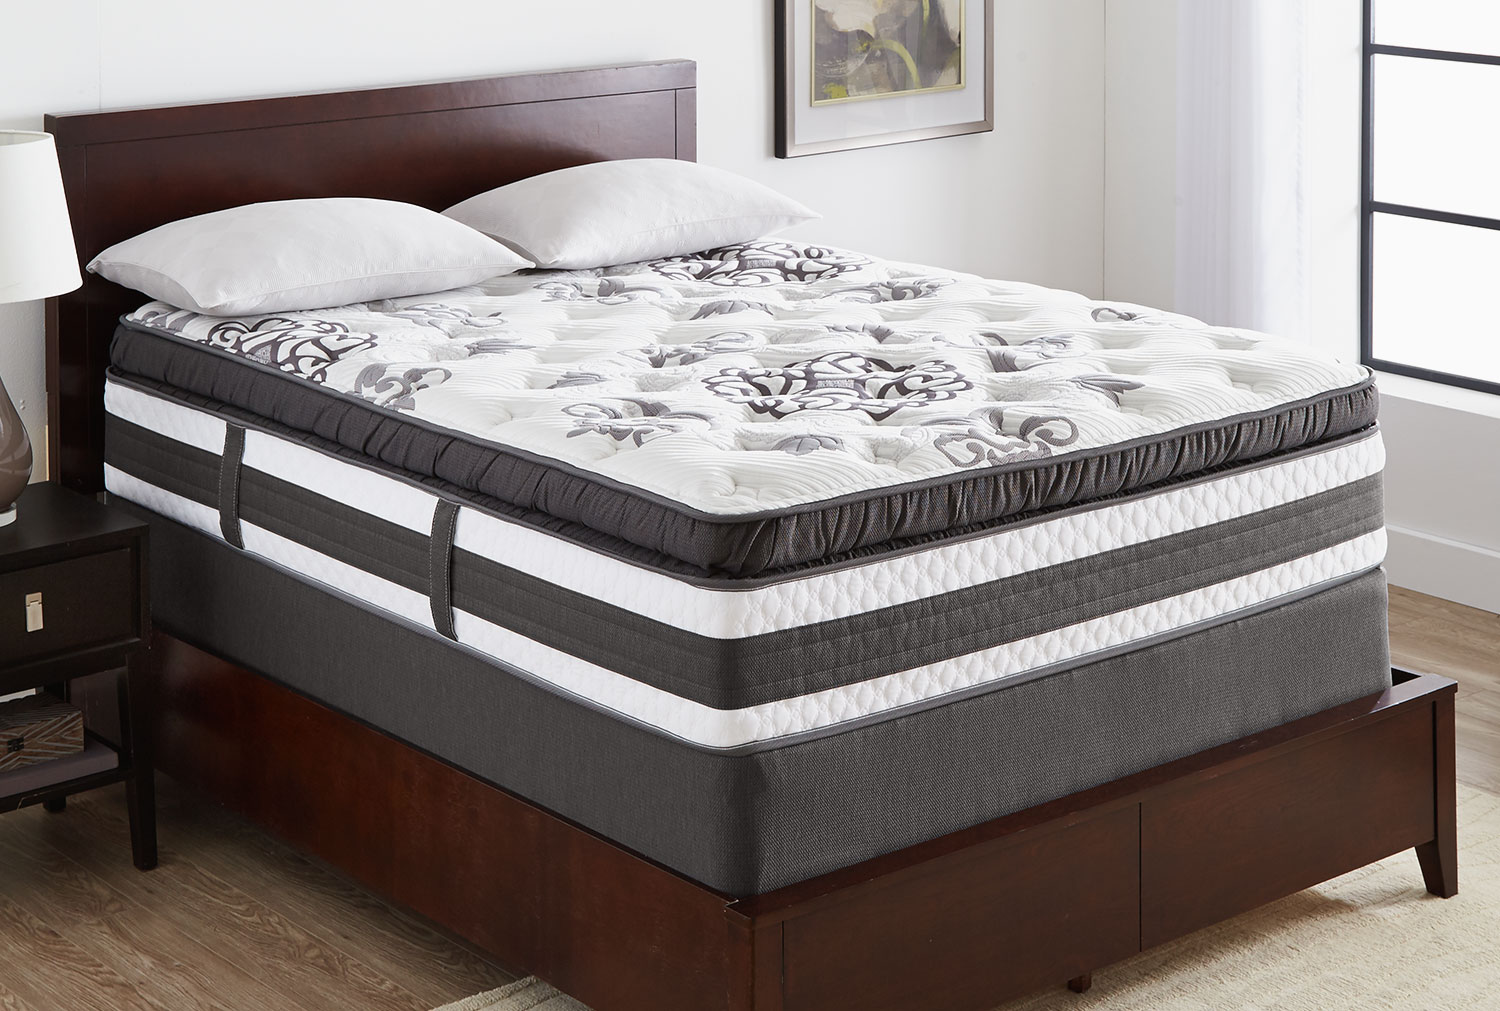 Serta iCollection Hopedale Super Pillow-Top Plush Full Mattress Set